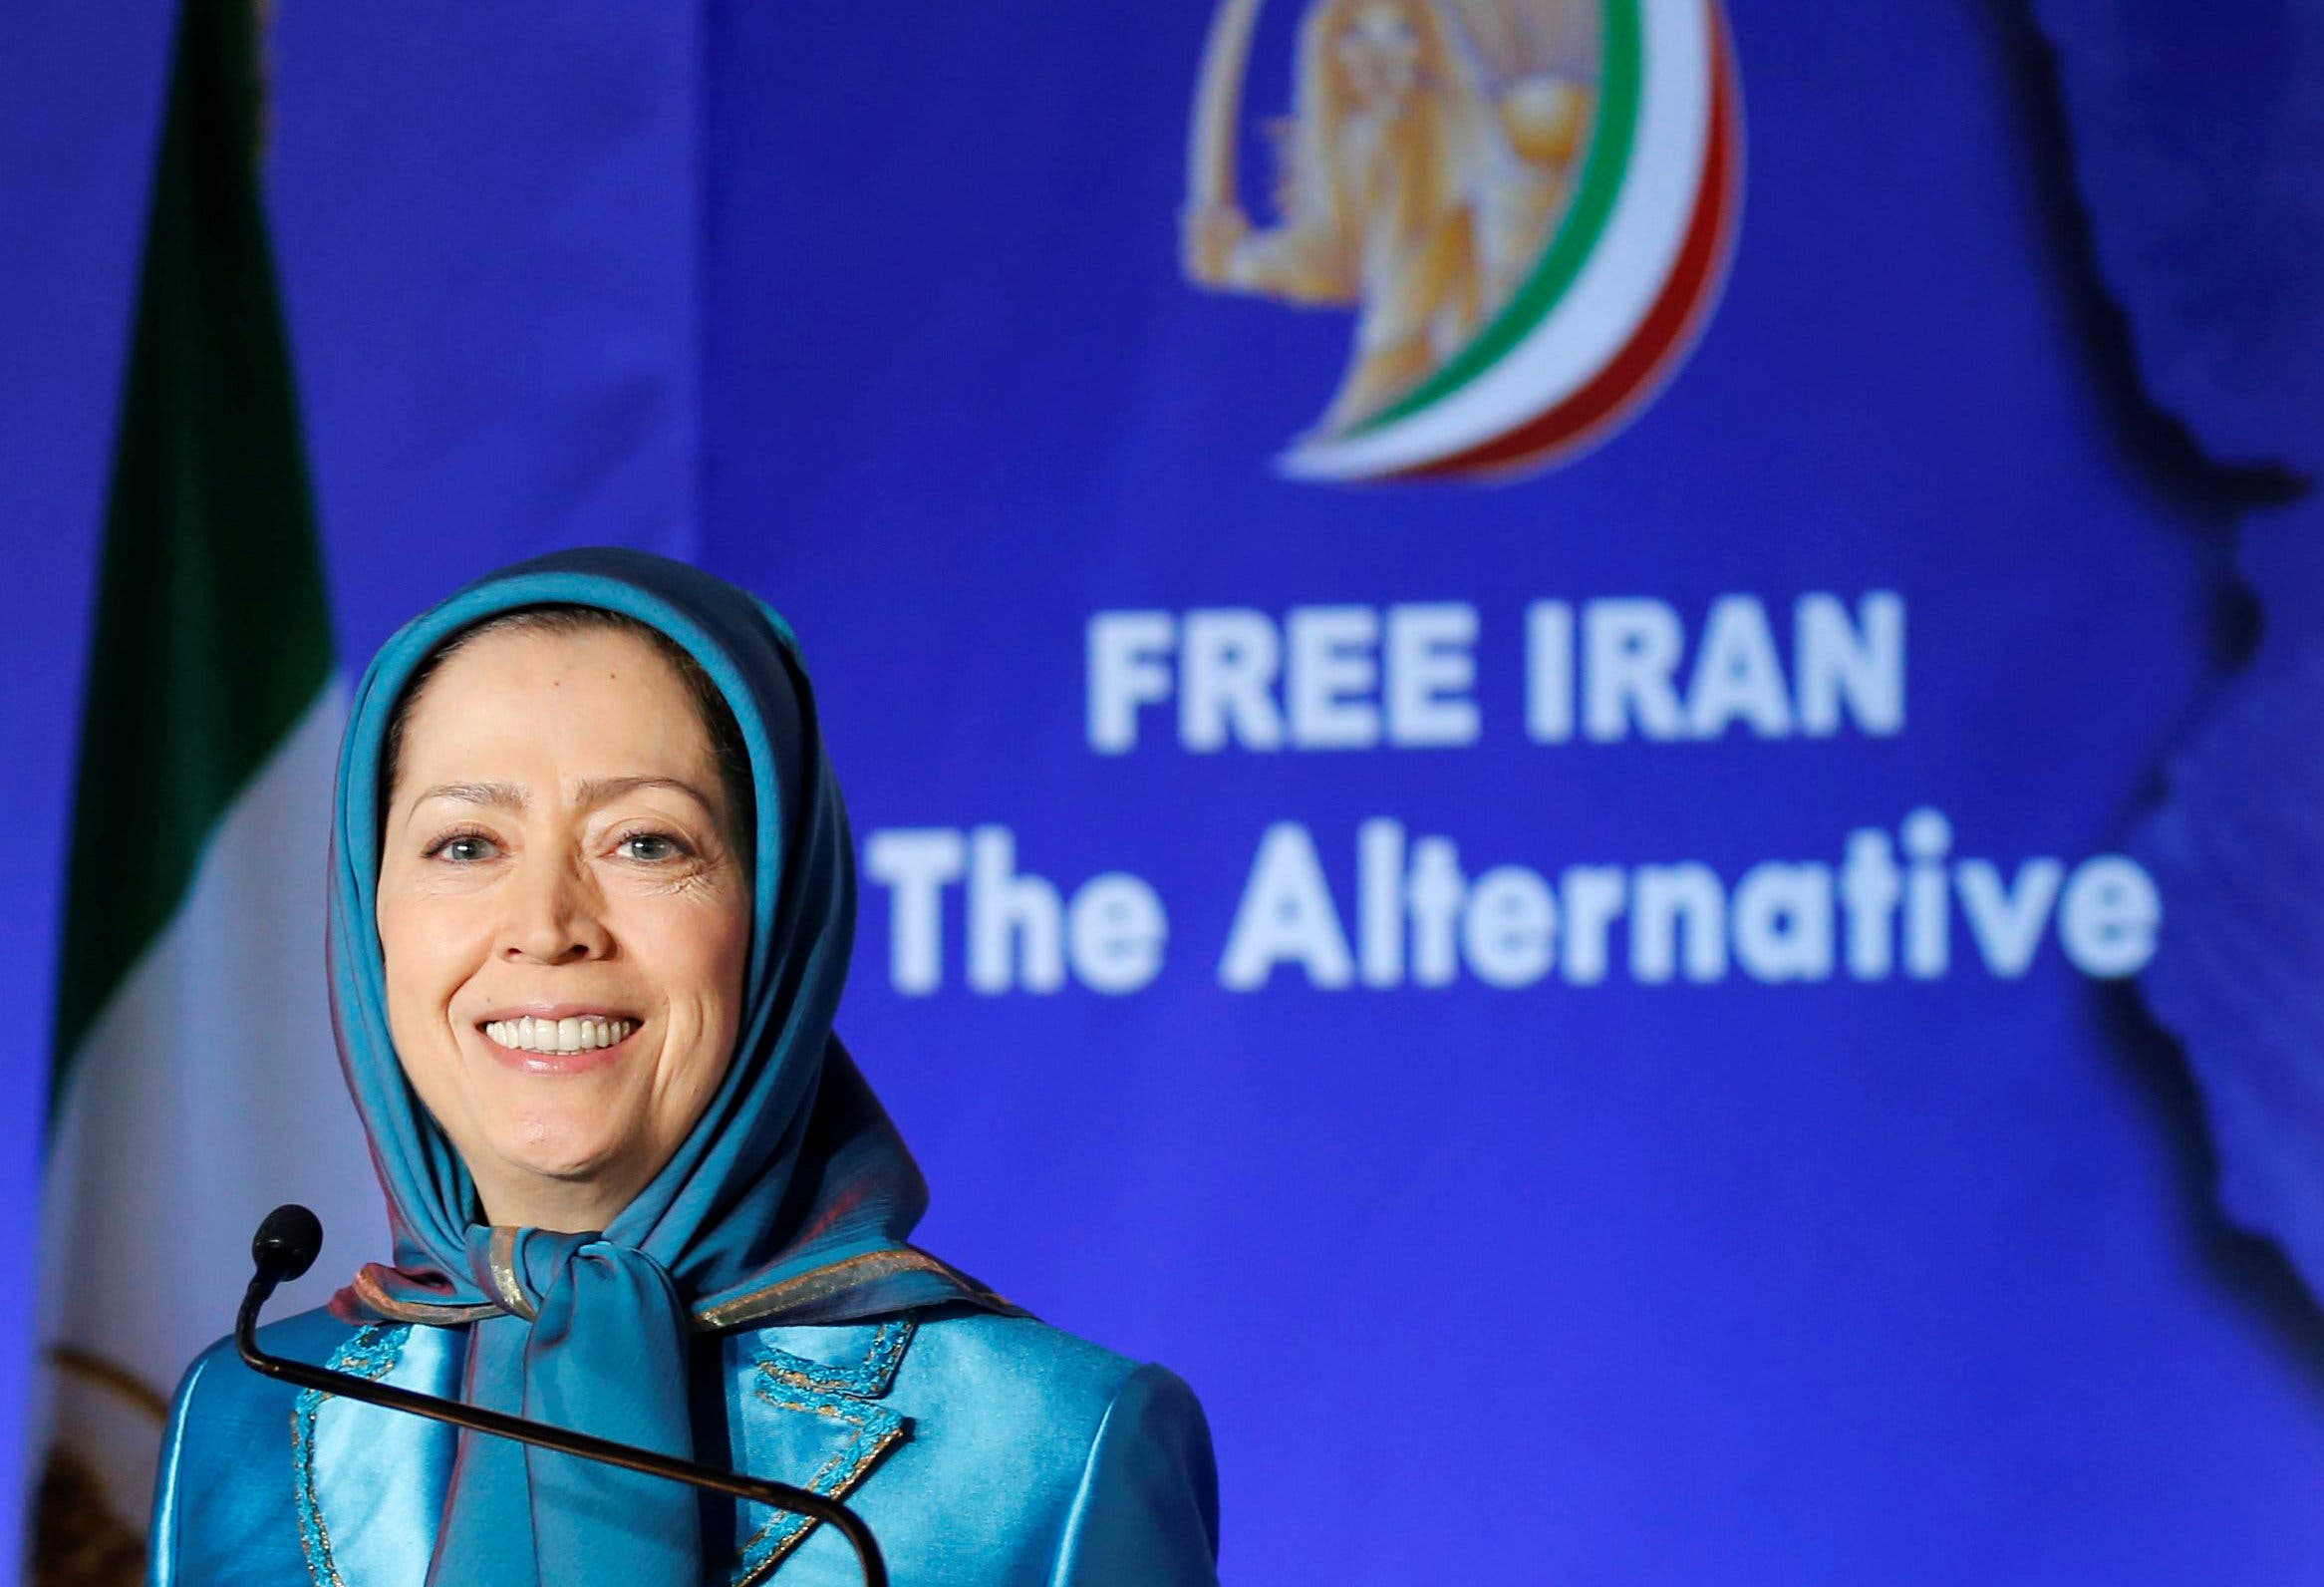 Maryam Rajavi delivers a speech during their gathering in Villepinte on June 30, 2018. (Reuters)